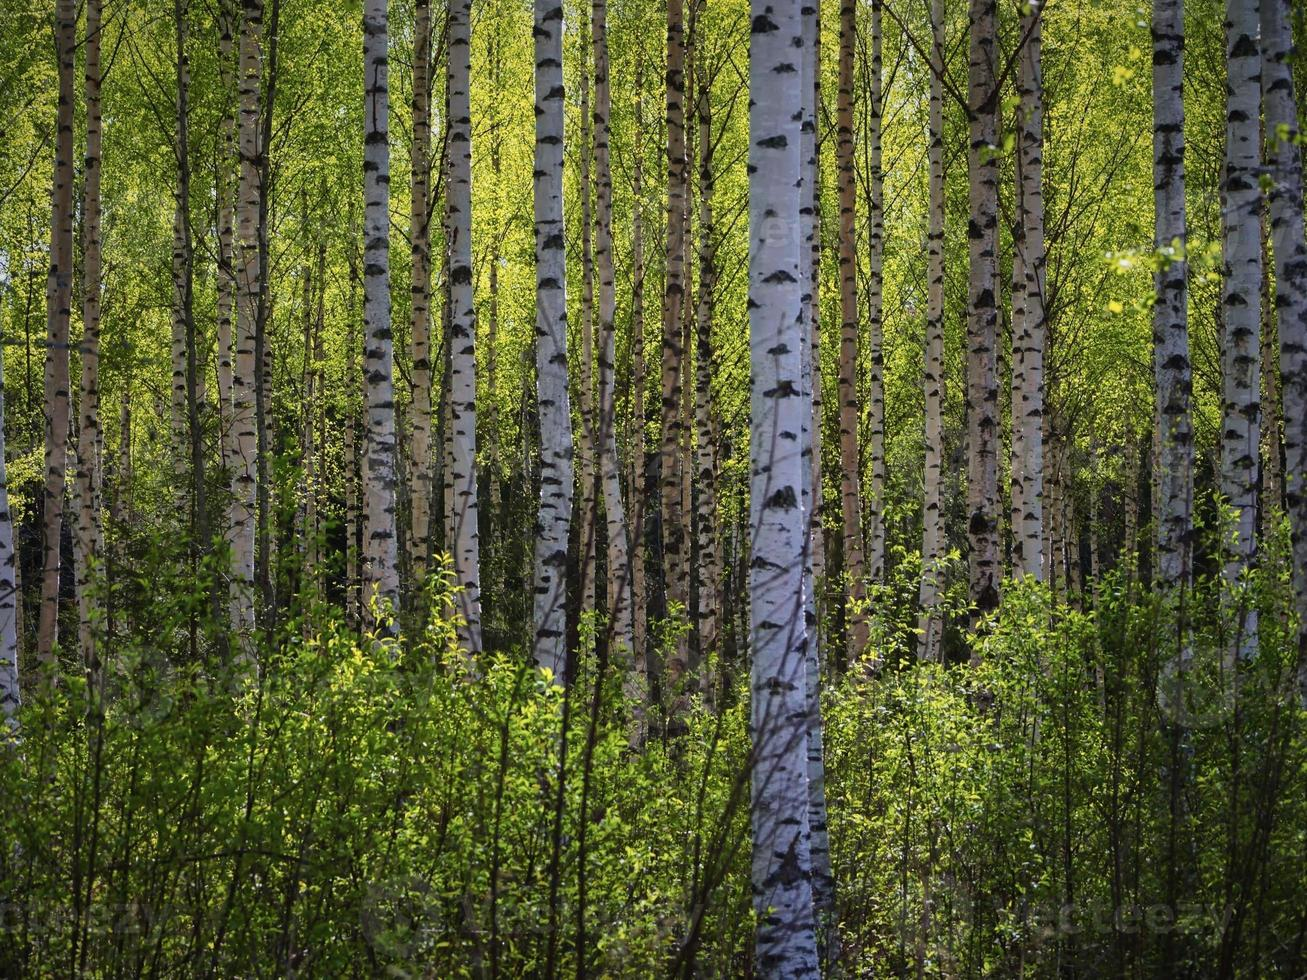 Trees in the Springtime Forest. photo